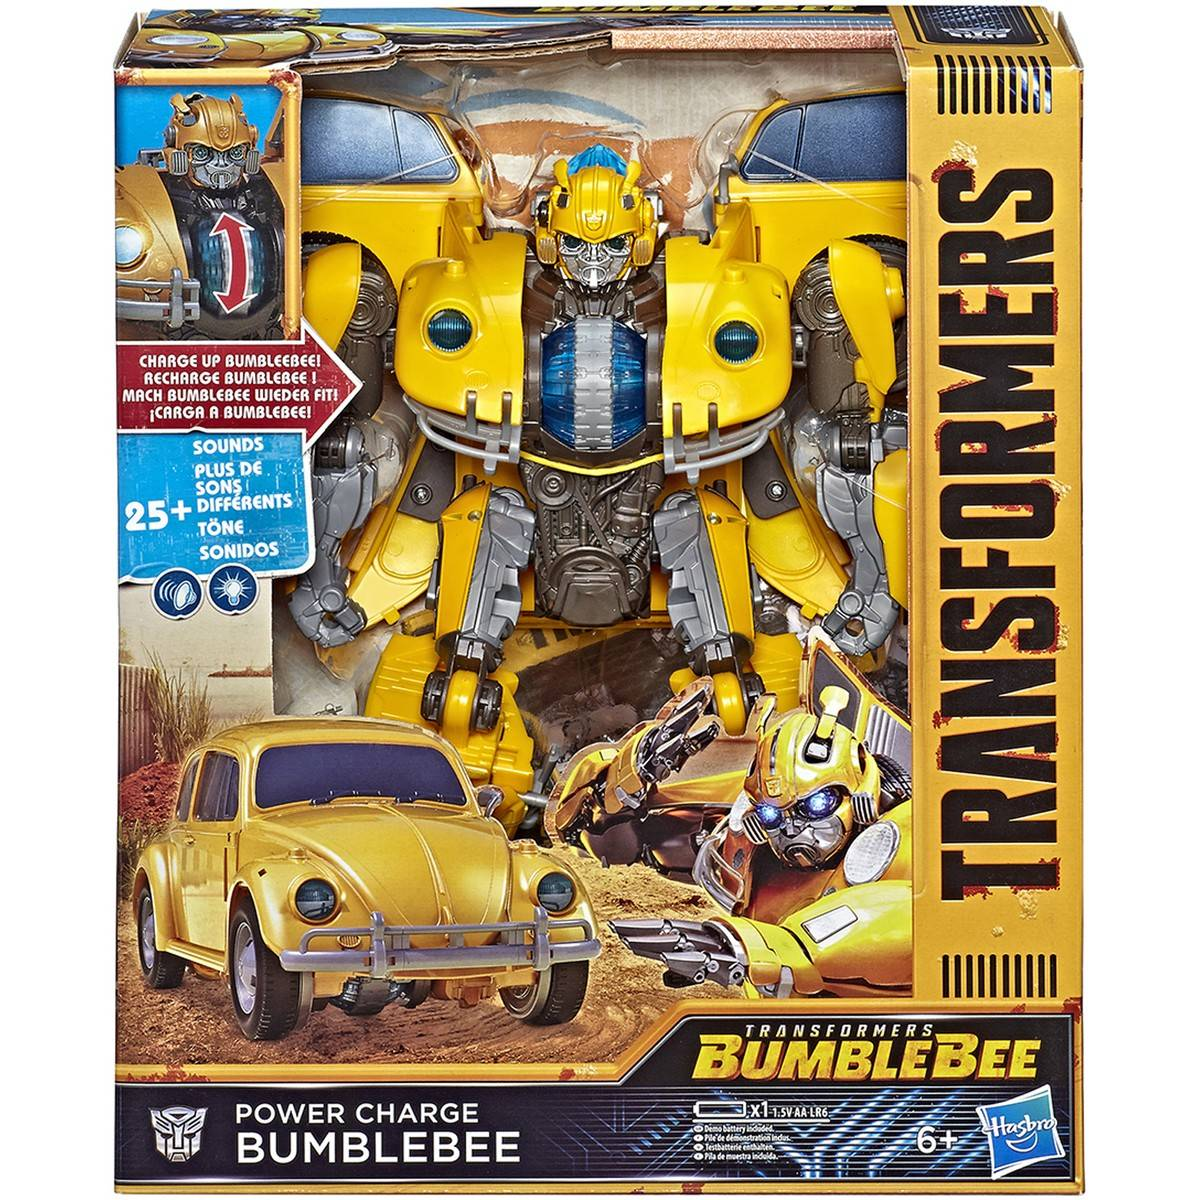 Big W Toys Catalogue Transformers Bumblebee Movie Toys Power Charge Bumblebee Action Figure